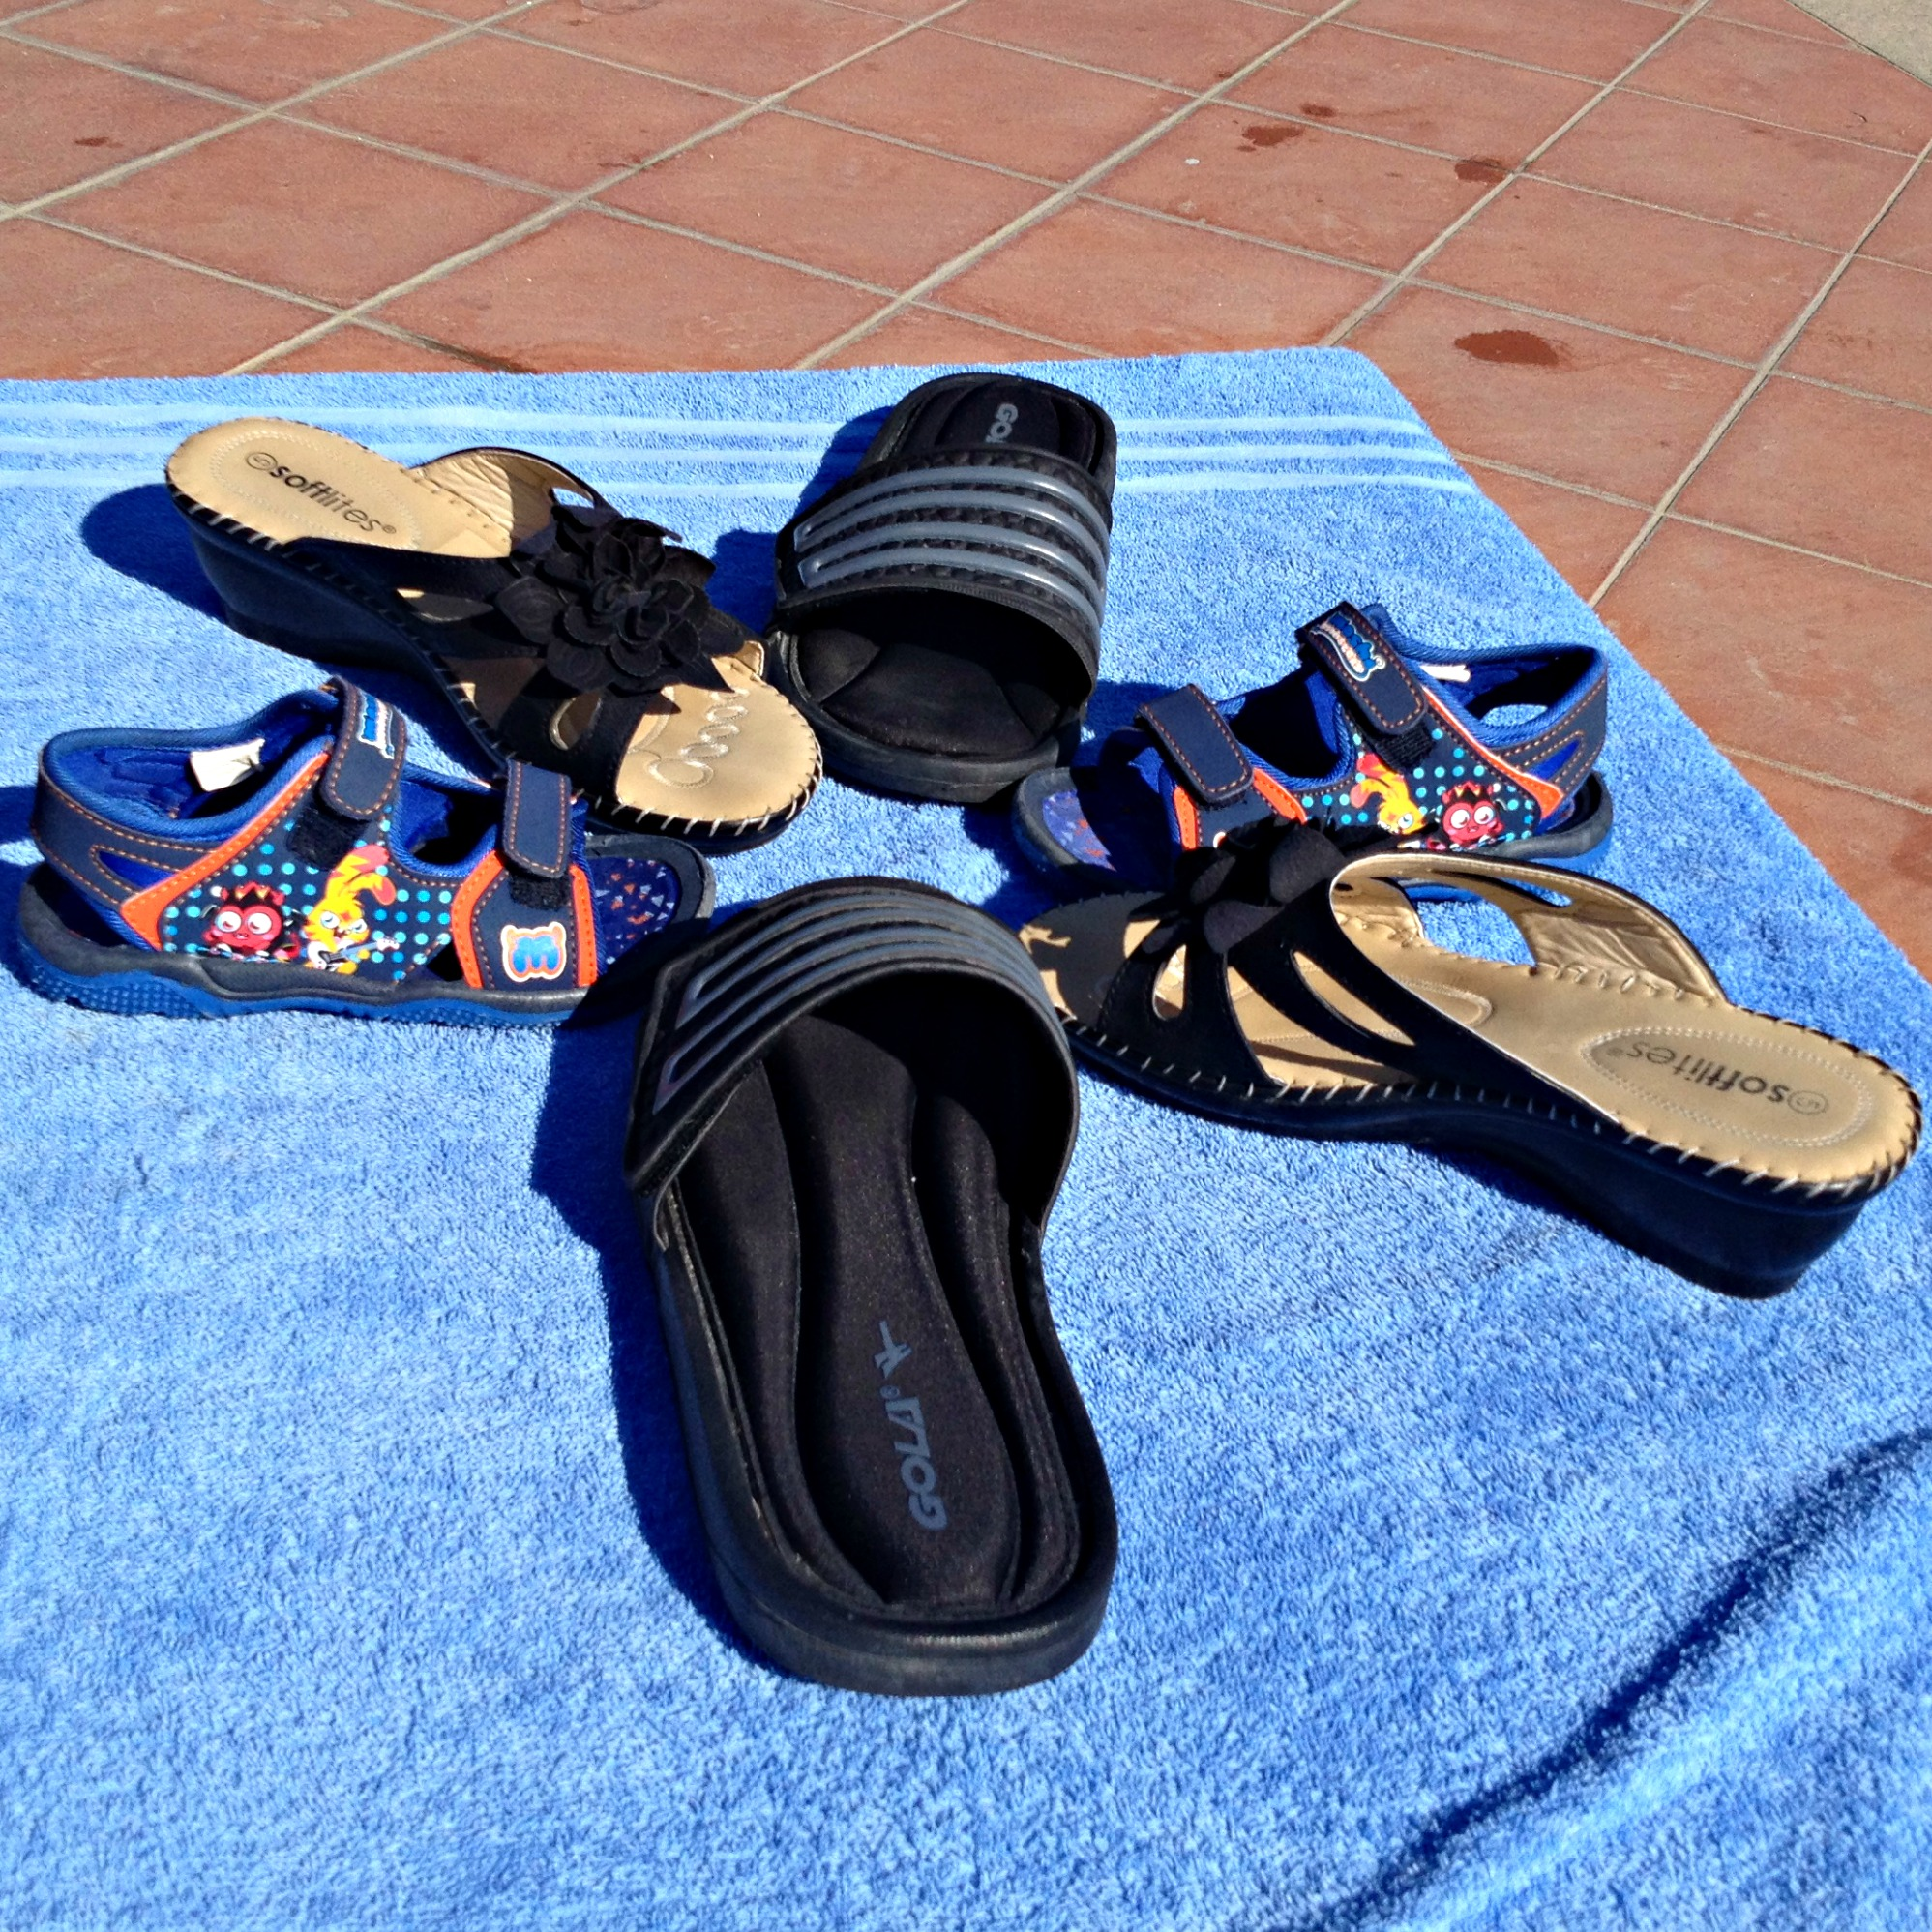 While on holiday, we tried Shoe Zone summer shoes, I had a gorgeous